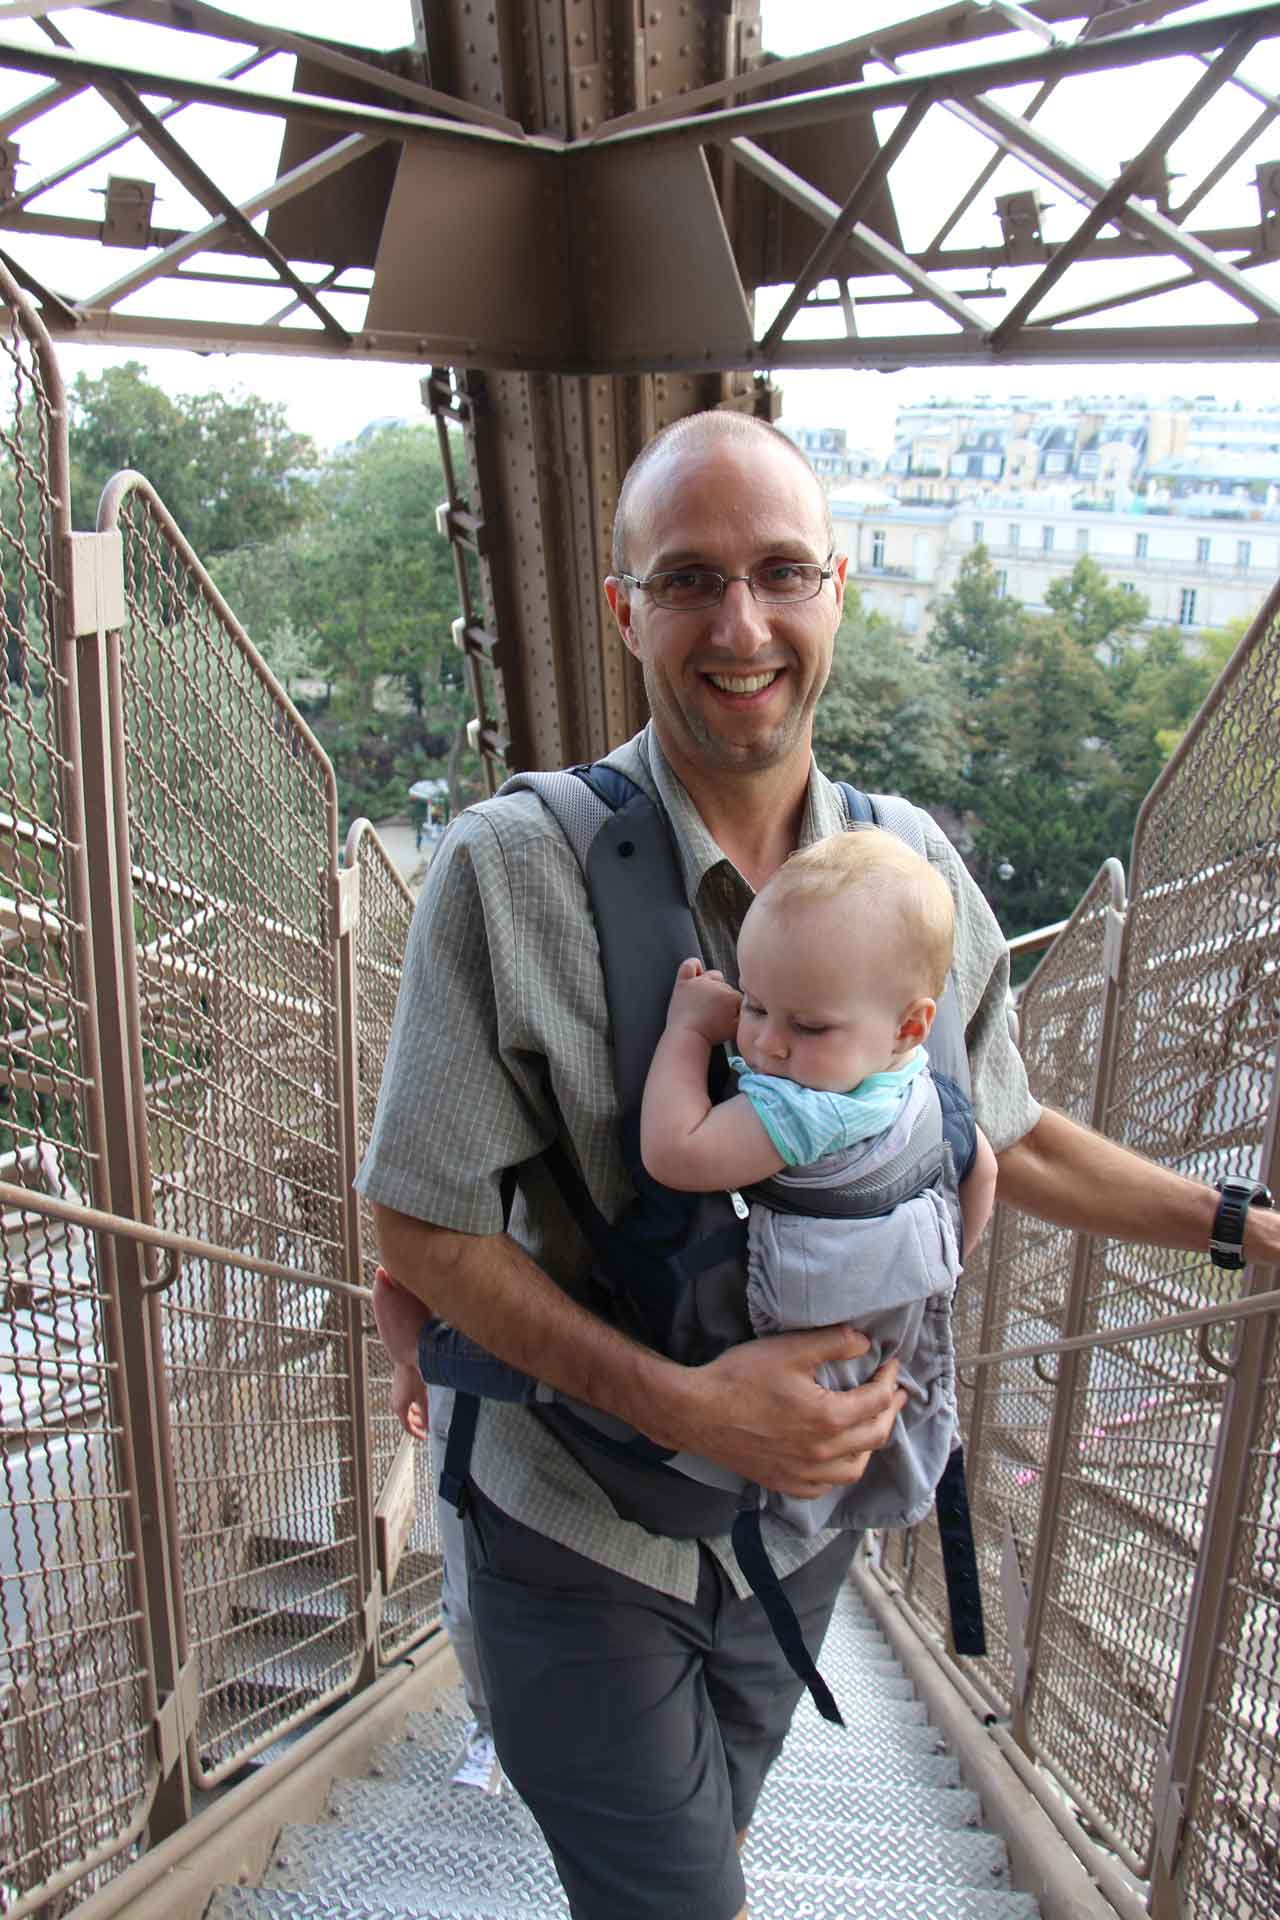 Climbing stairs at Eiffel Tower in Paris with a baby